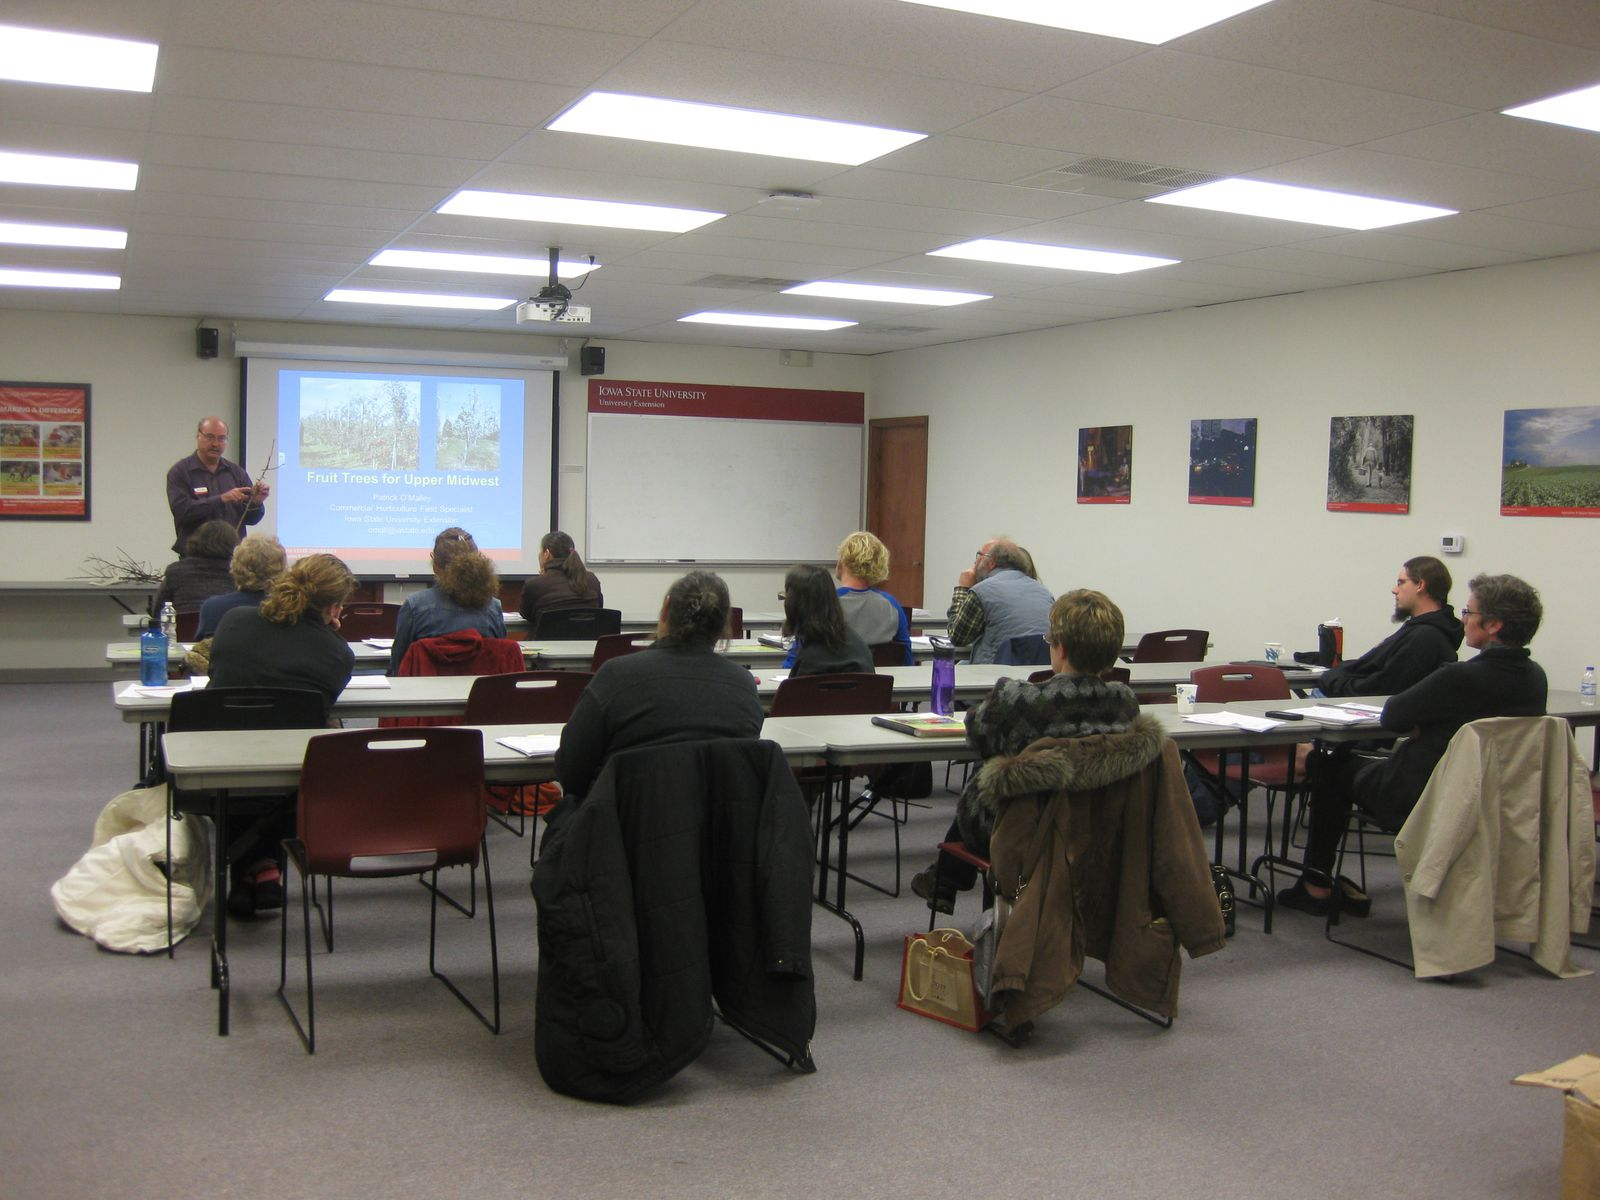 Patrick O'Malley, ISU Extension Commercial Horticulture Specialist, discusses fruit crops for the Upper Midwest and shares some examples with class participants.